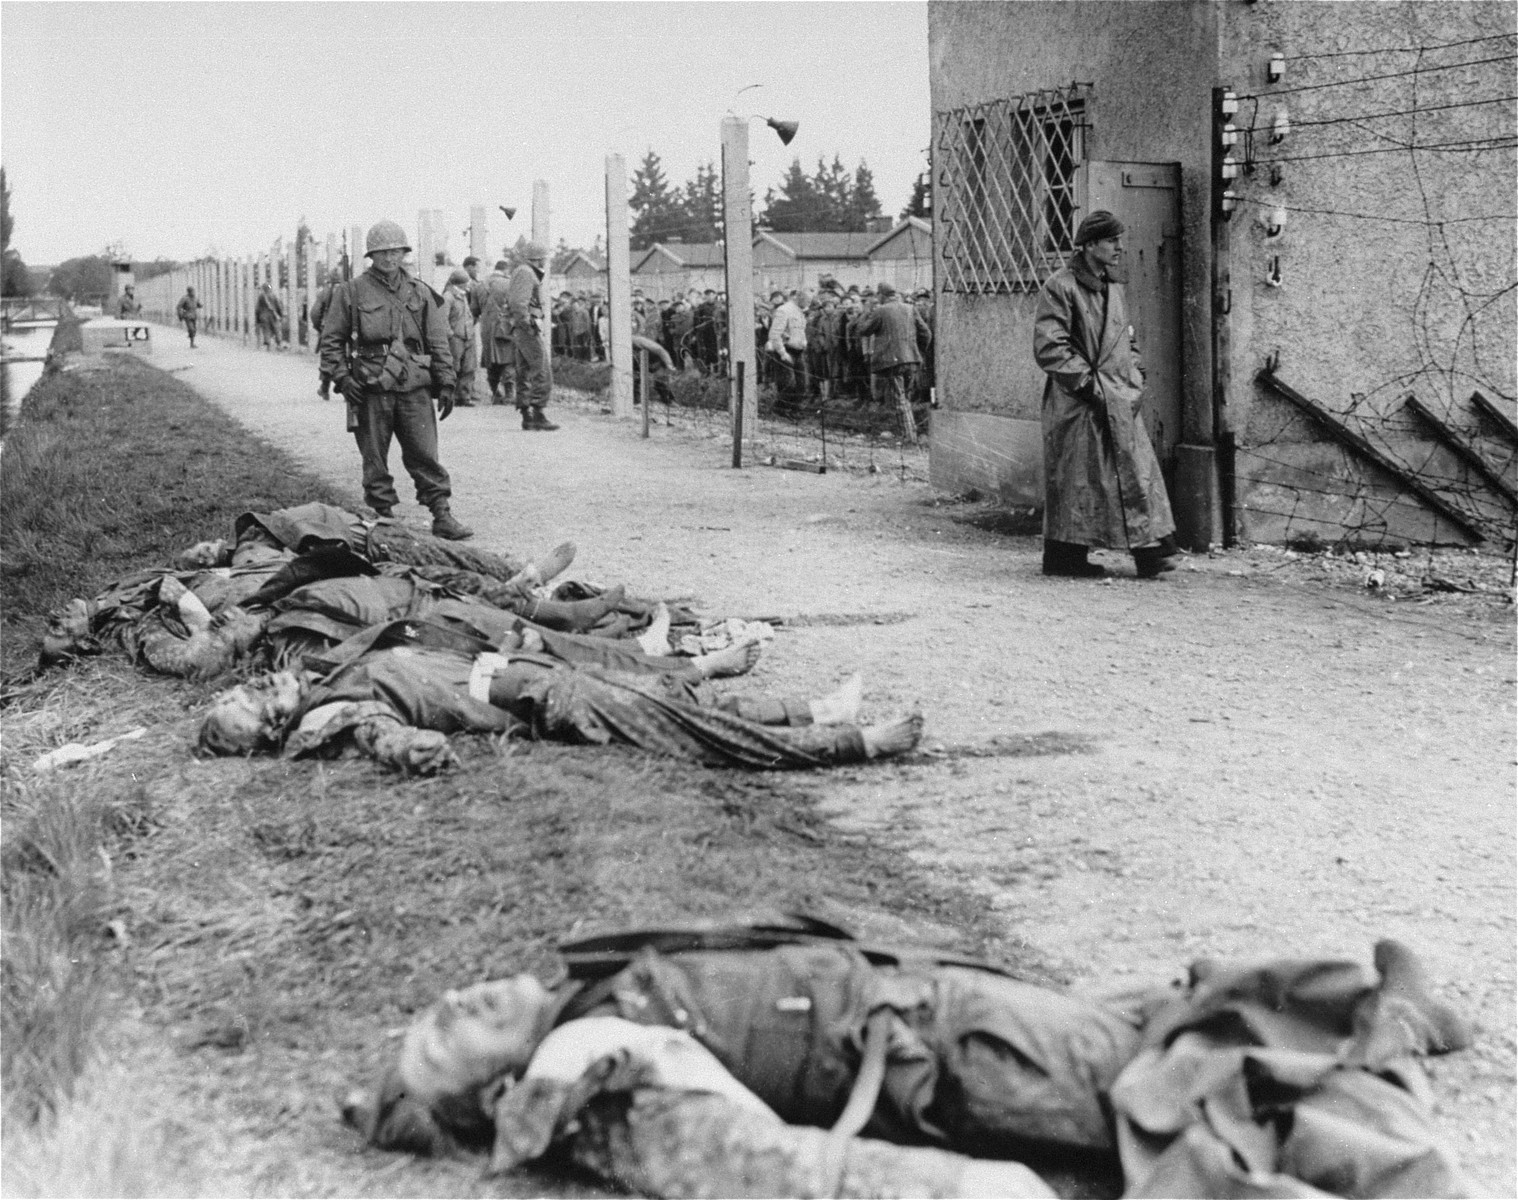 An American soldier stands beside the bodies of SS personnel shot by U.S. troops during the liberation of Dachau.    The boots have been stripped off of the bodies.